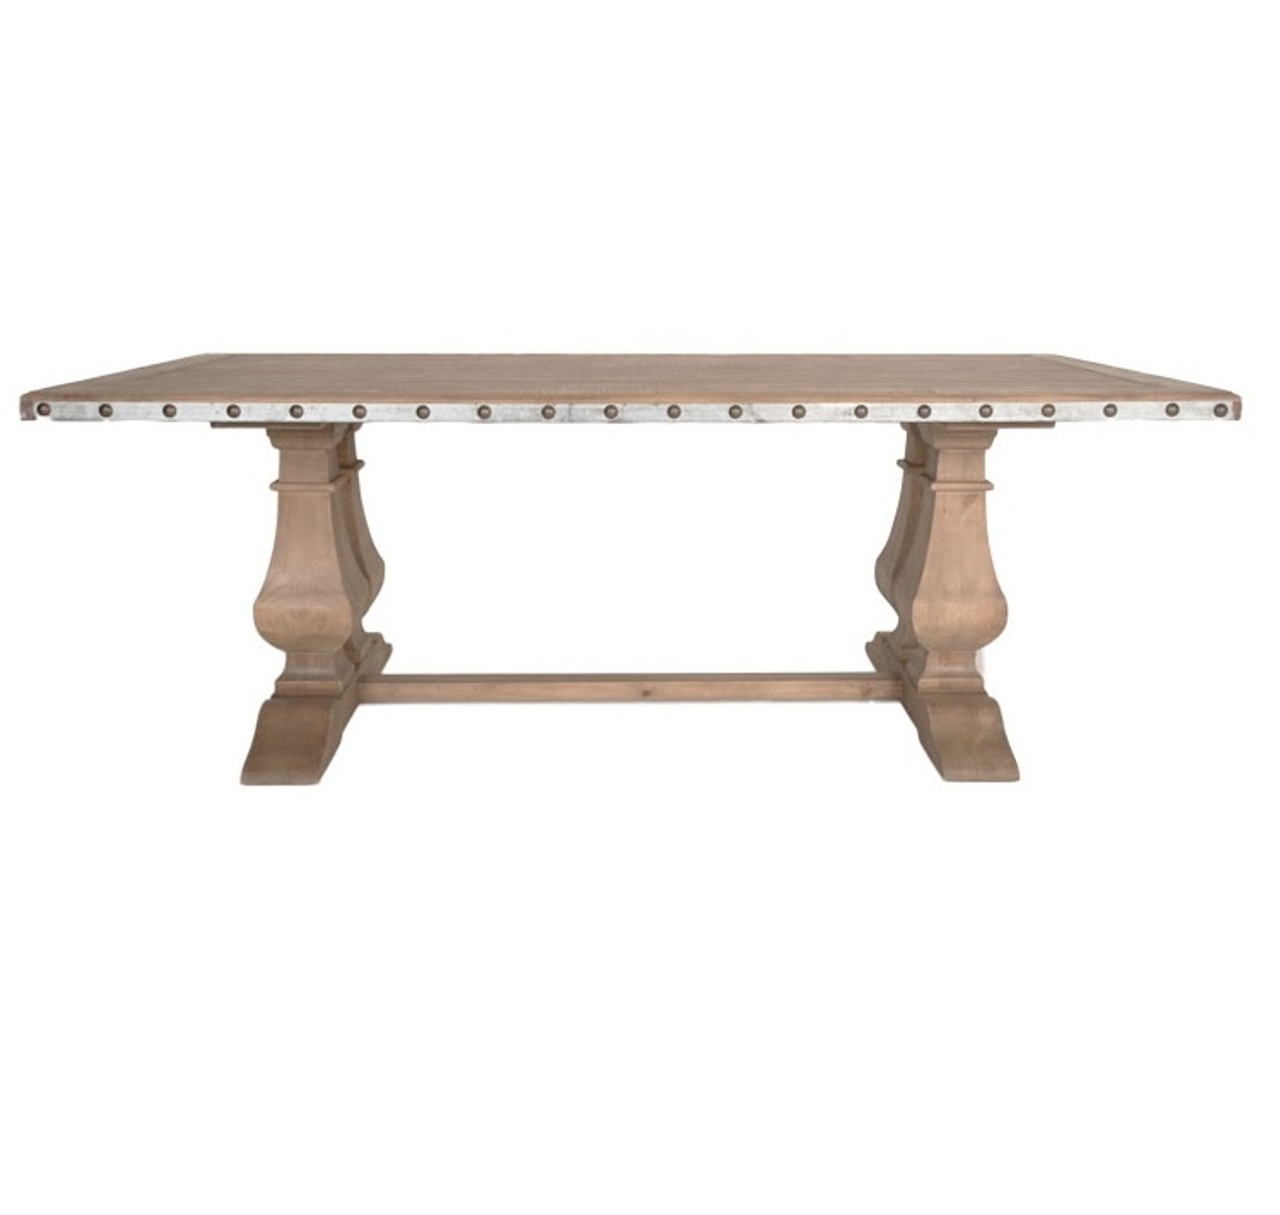 Maddox Barn Wood Double Trestle Dining Table with Antique Zinc Top ...